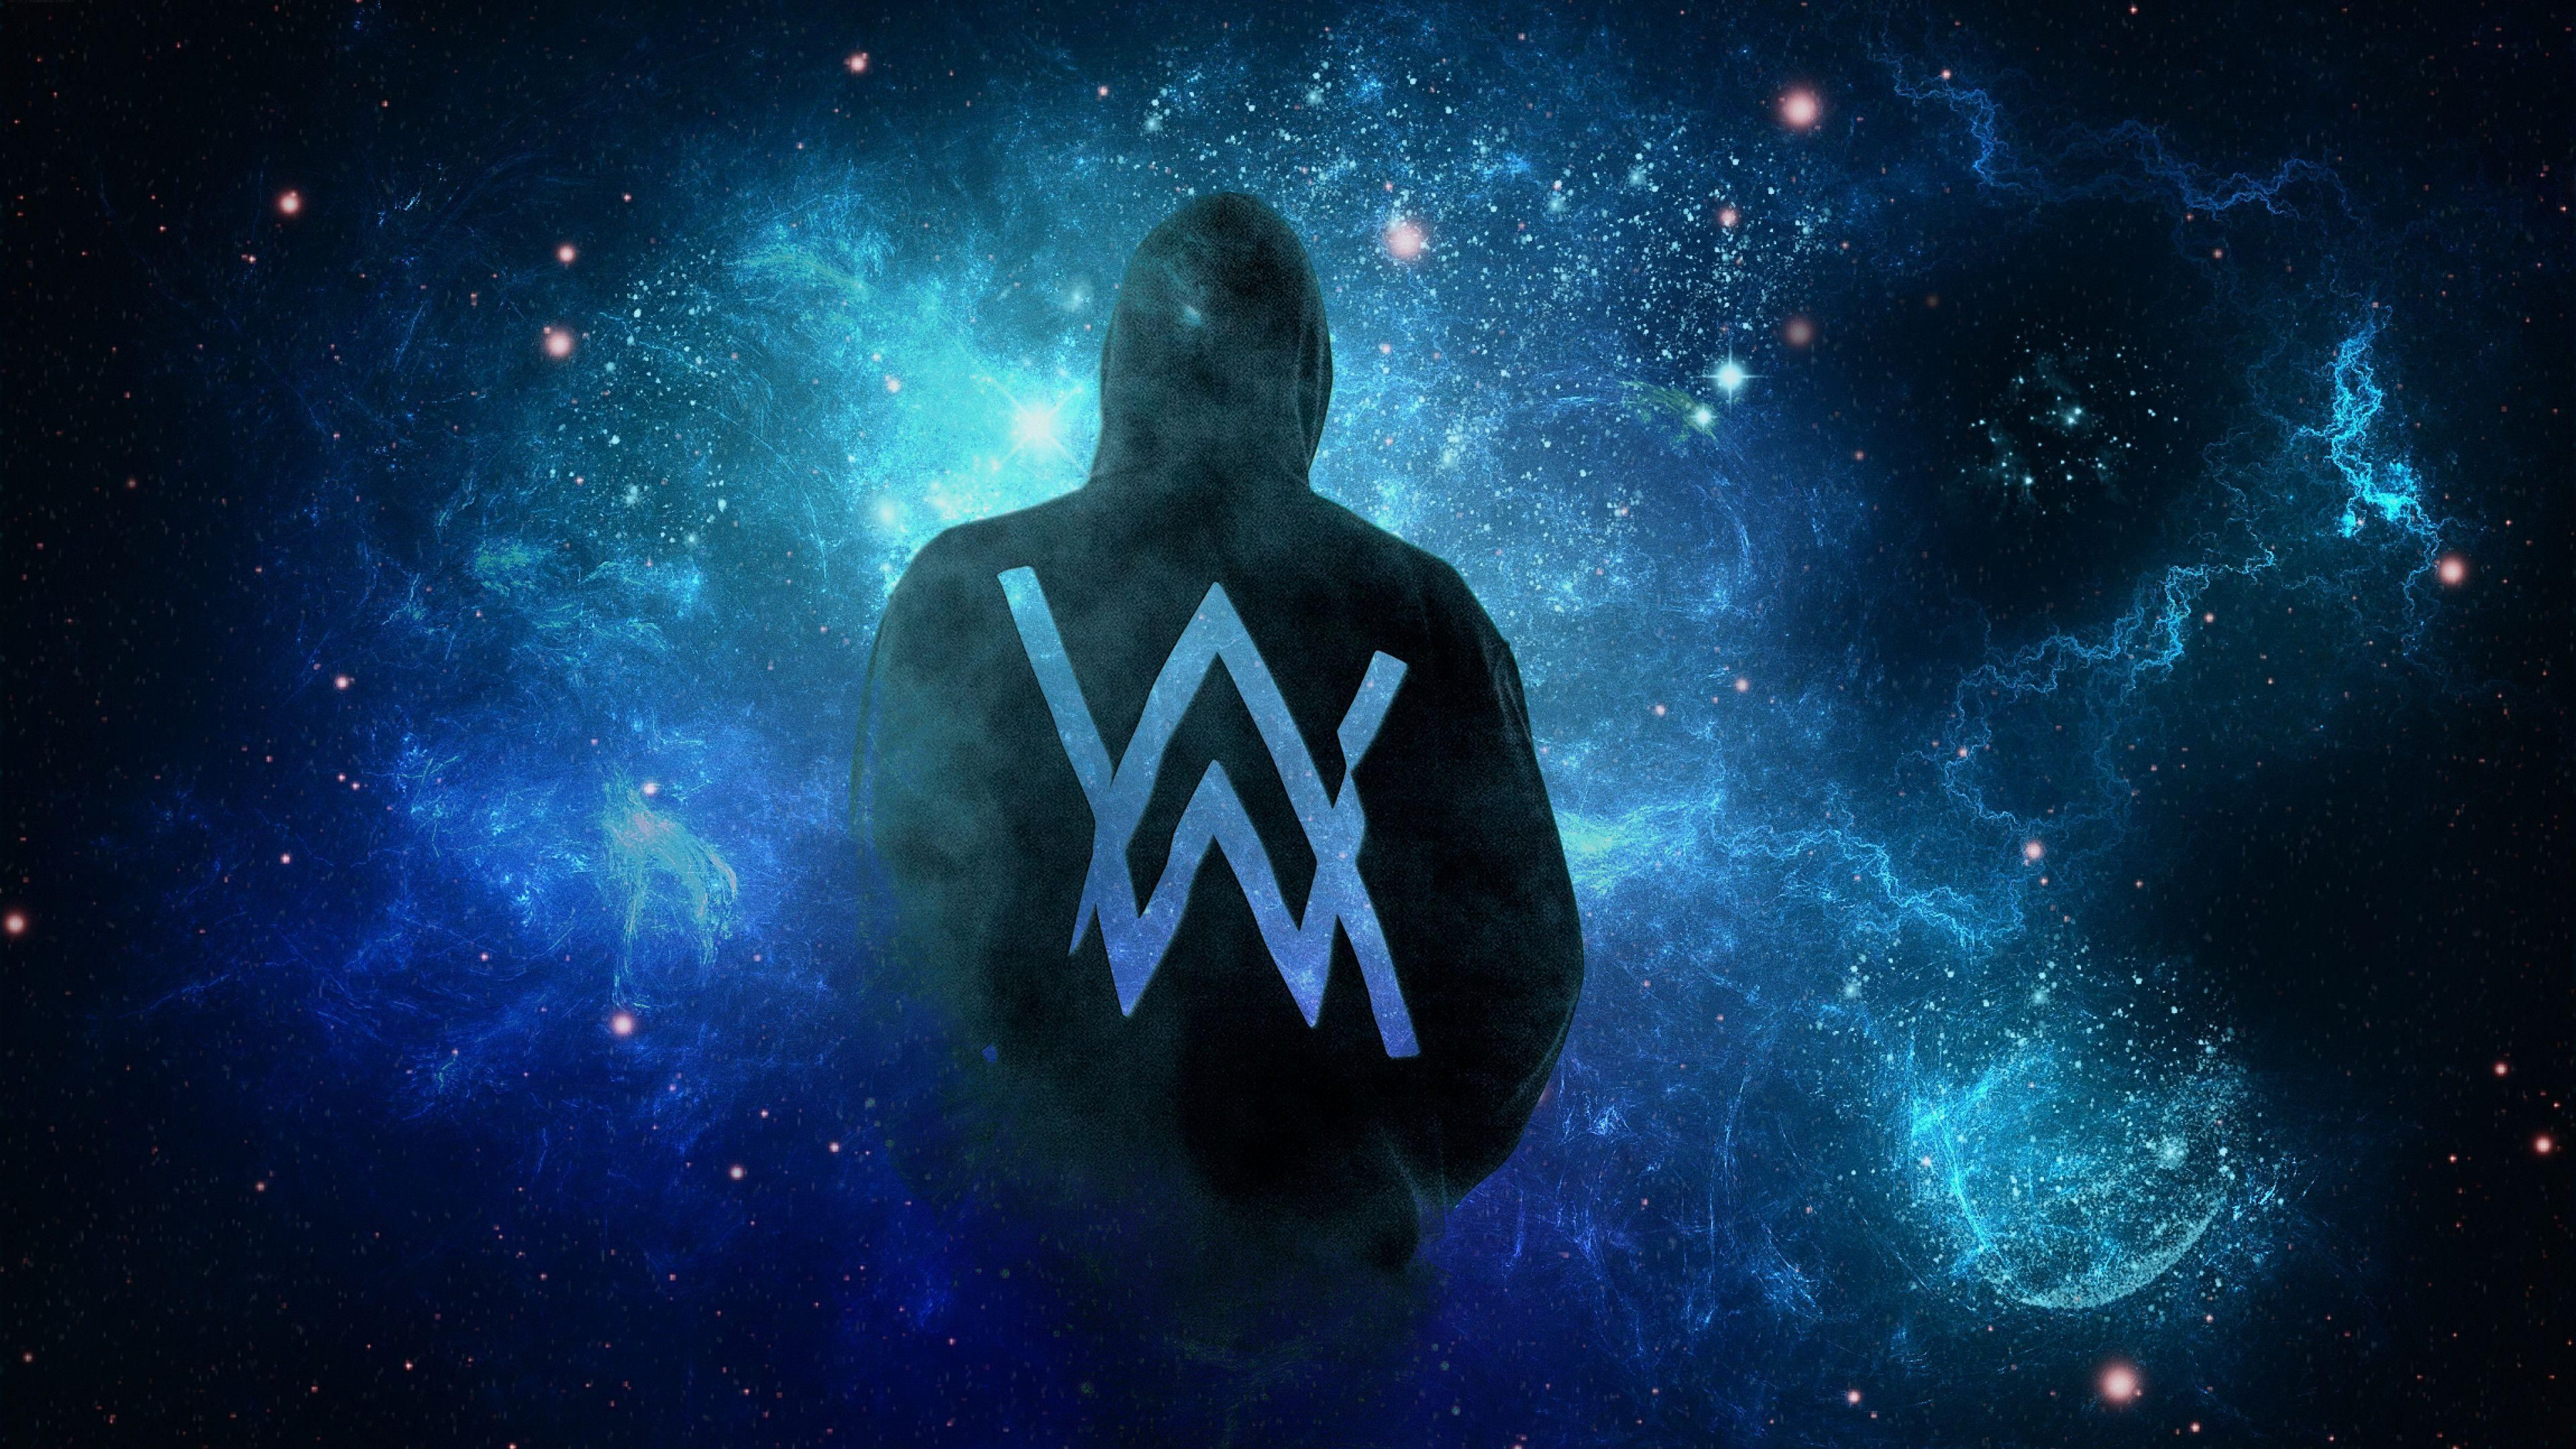 Alan Walker Wallpapers Hd Full Hd Pictures In 2019 Alan